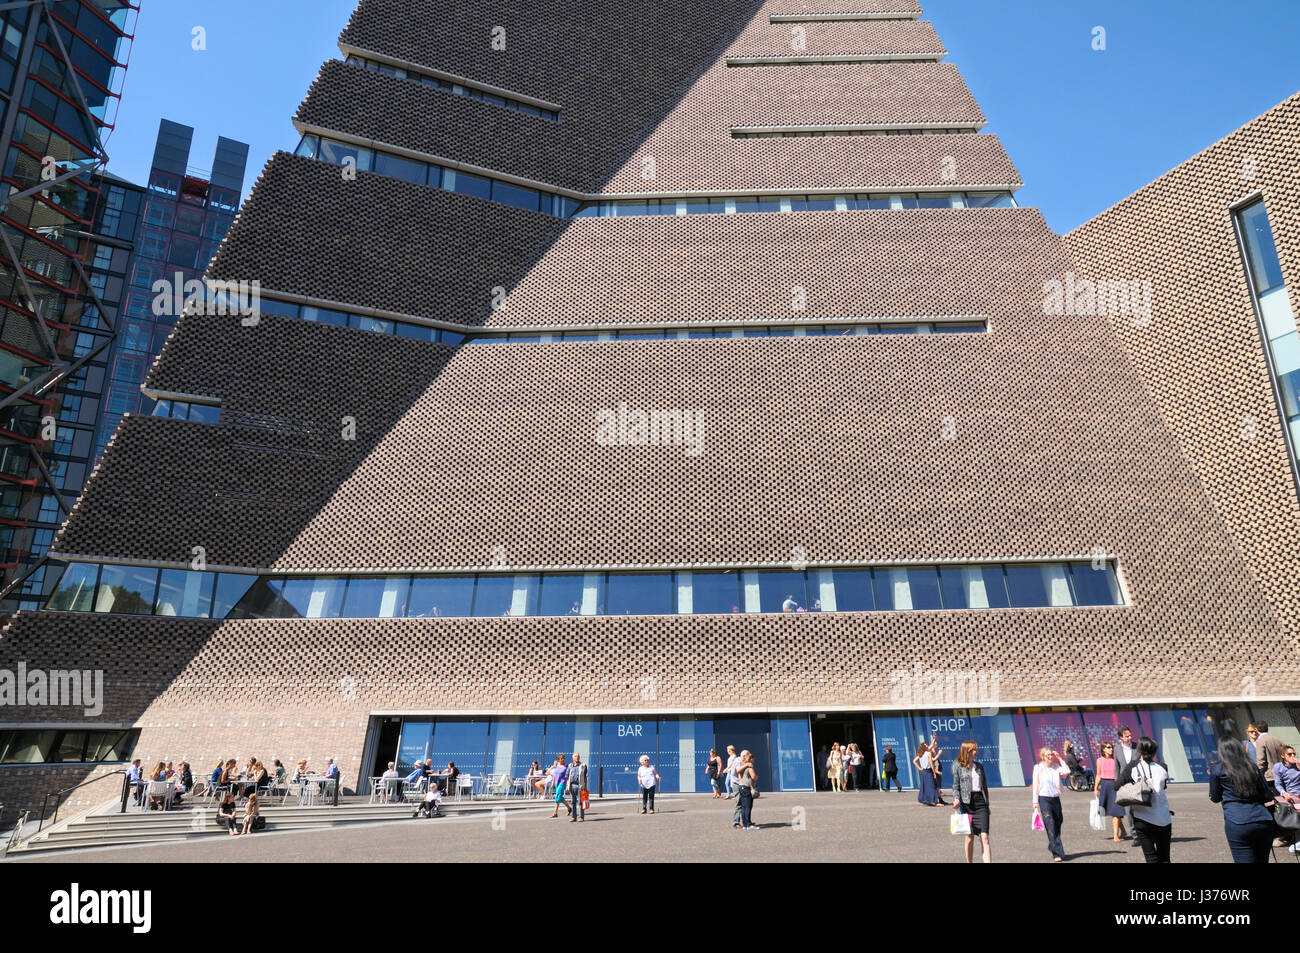 The Switch House extension, Tate Modern Art Gallery, London, UK - Stock Image